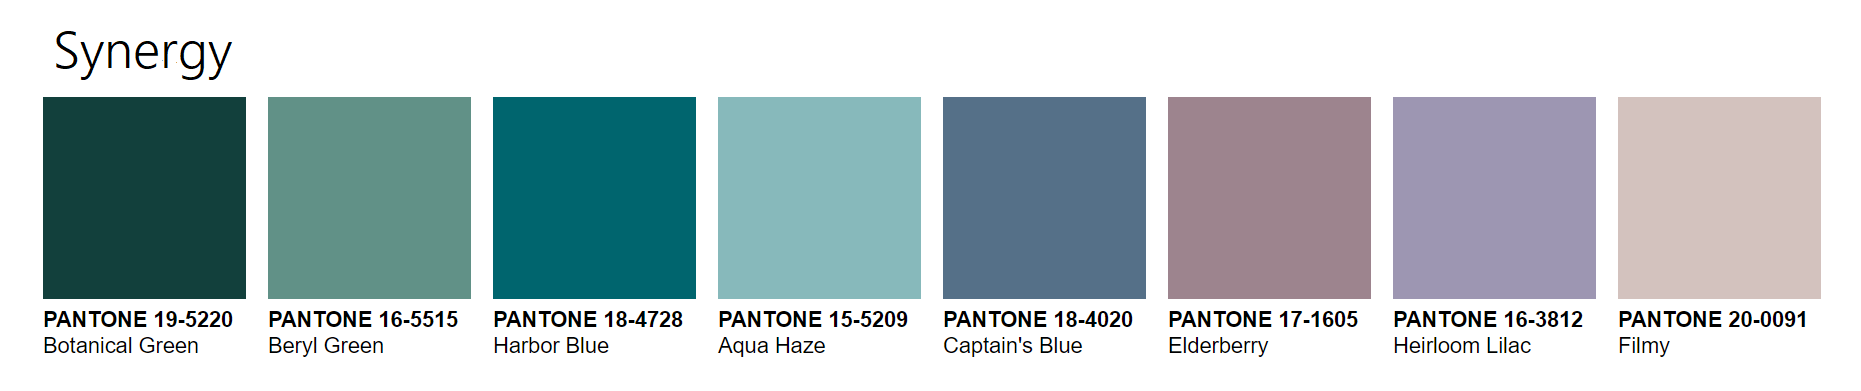 PANTONEVIEW Home + Interiors 2021 Synergy Palette